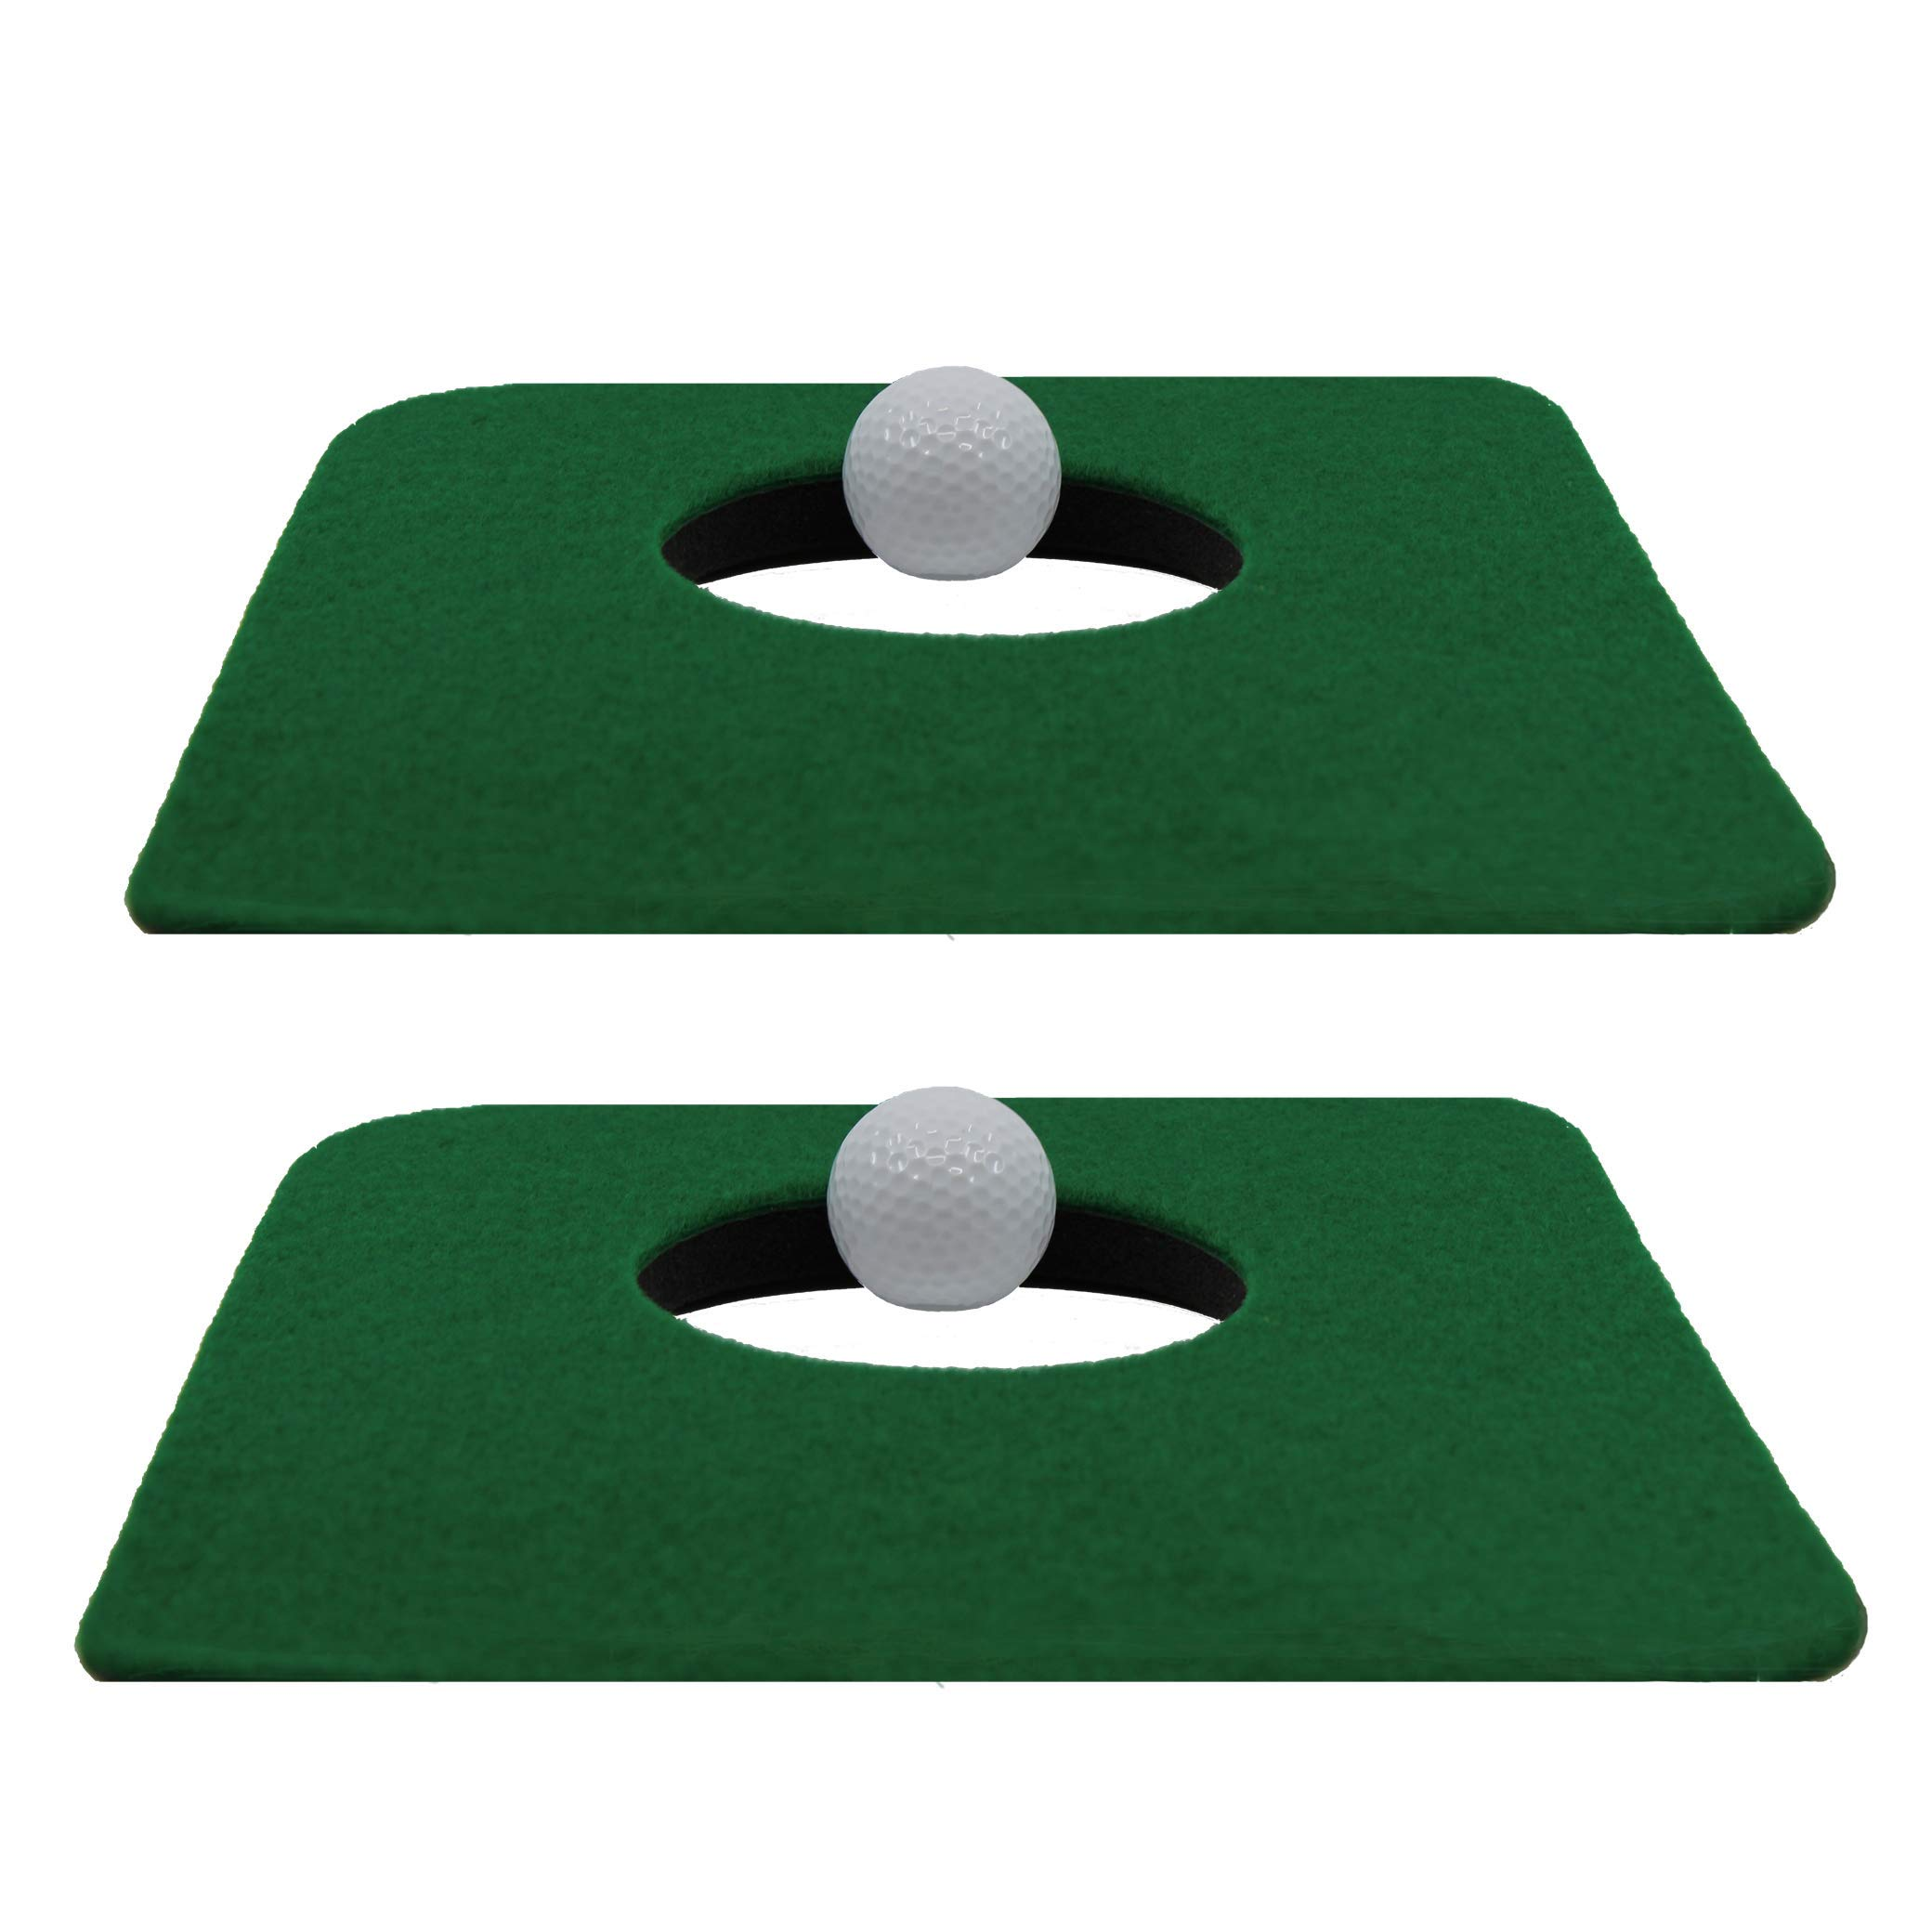 Upstreet Putting Mat for Indoor Golf Cup - Includes Two Indoor Putt Mats and Two Training Balls by Upstreet